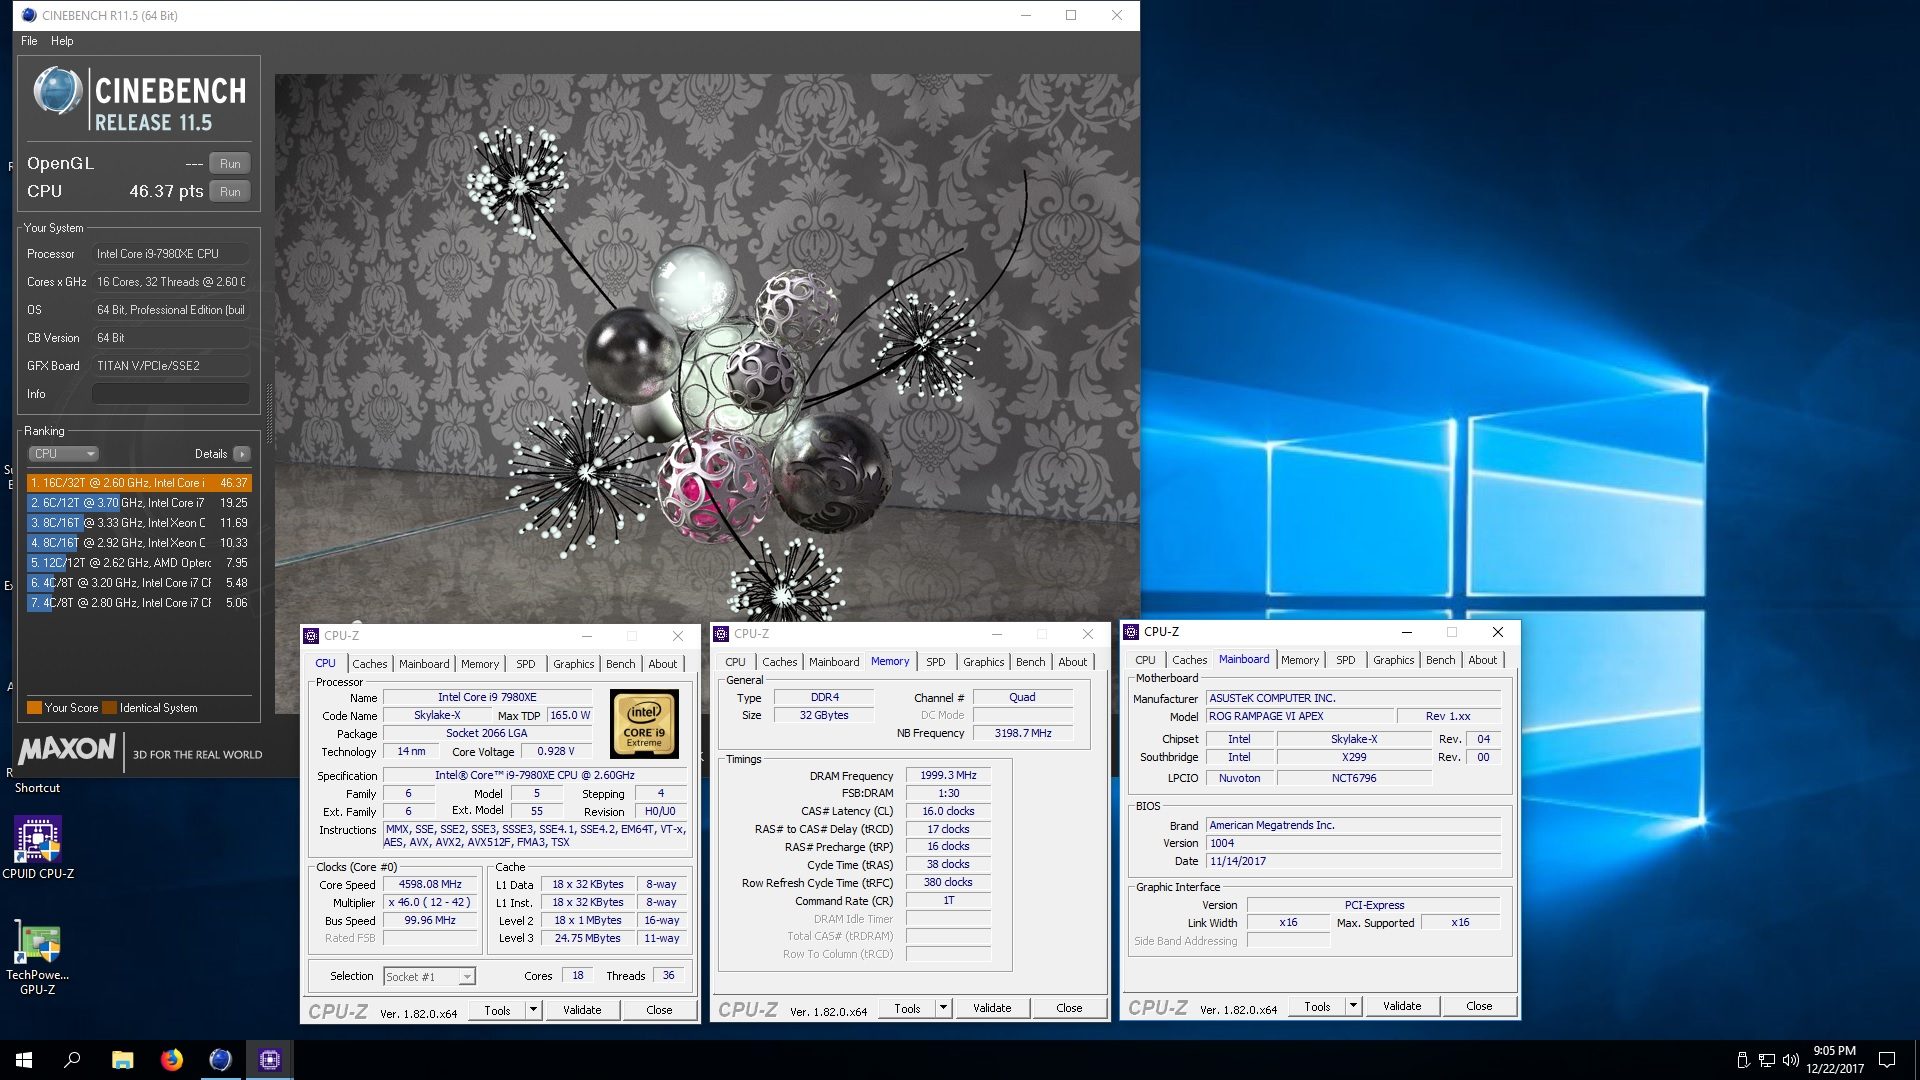 Menthol`s Cinebench - R11 5 score: 46 37 points with a Core i9 7980XE